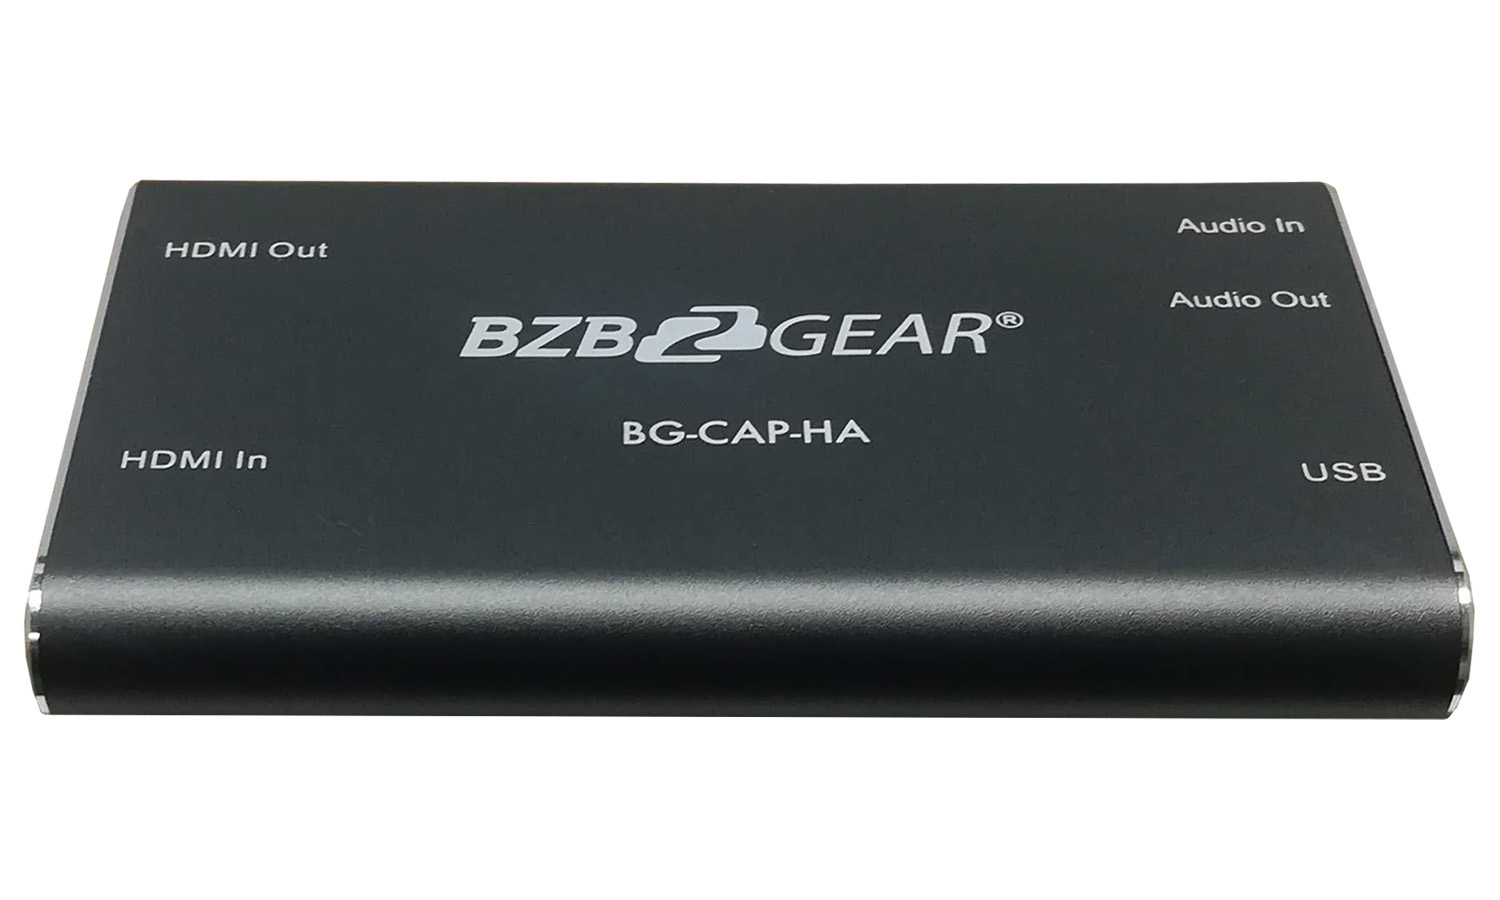 BG-CAP-HA USB 3.0 Powered HDMI Capture Device by BZBGEAR